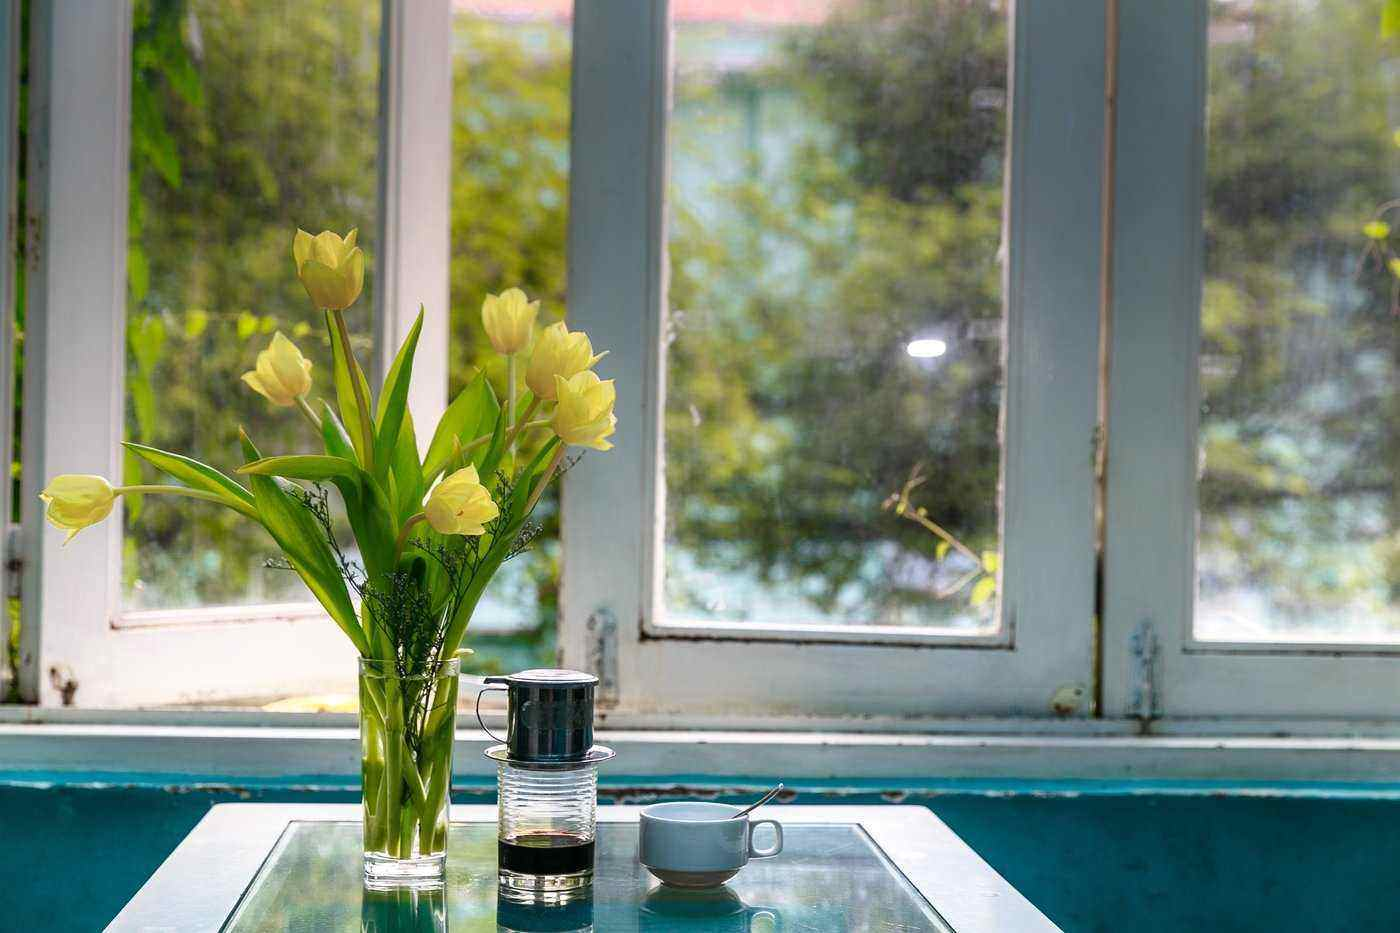 flowers by open window - upgrade windows to add value when selling your home